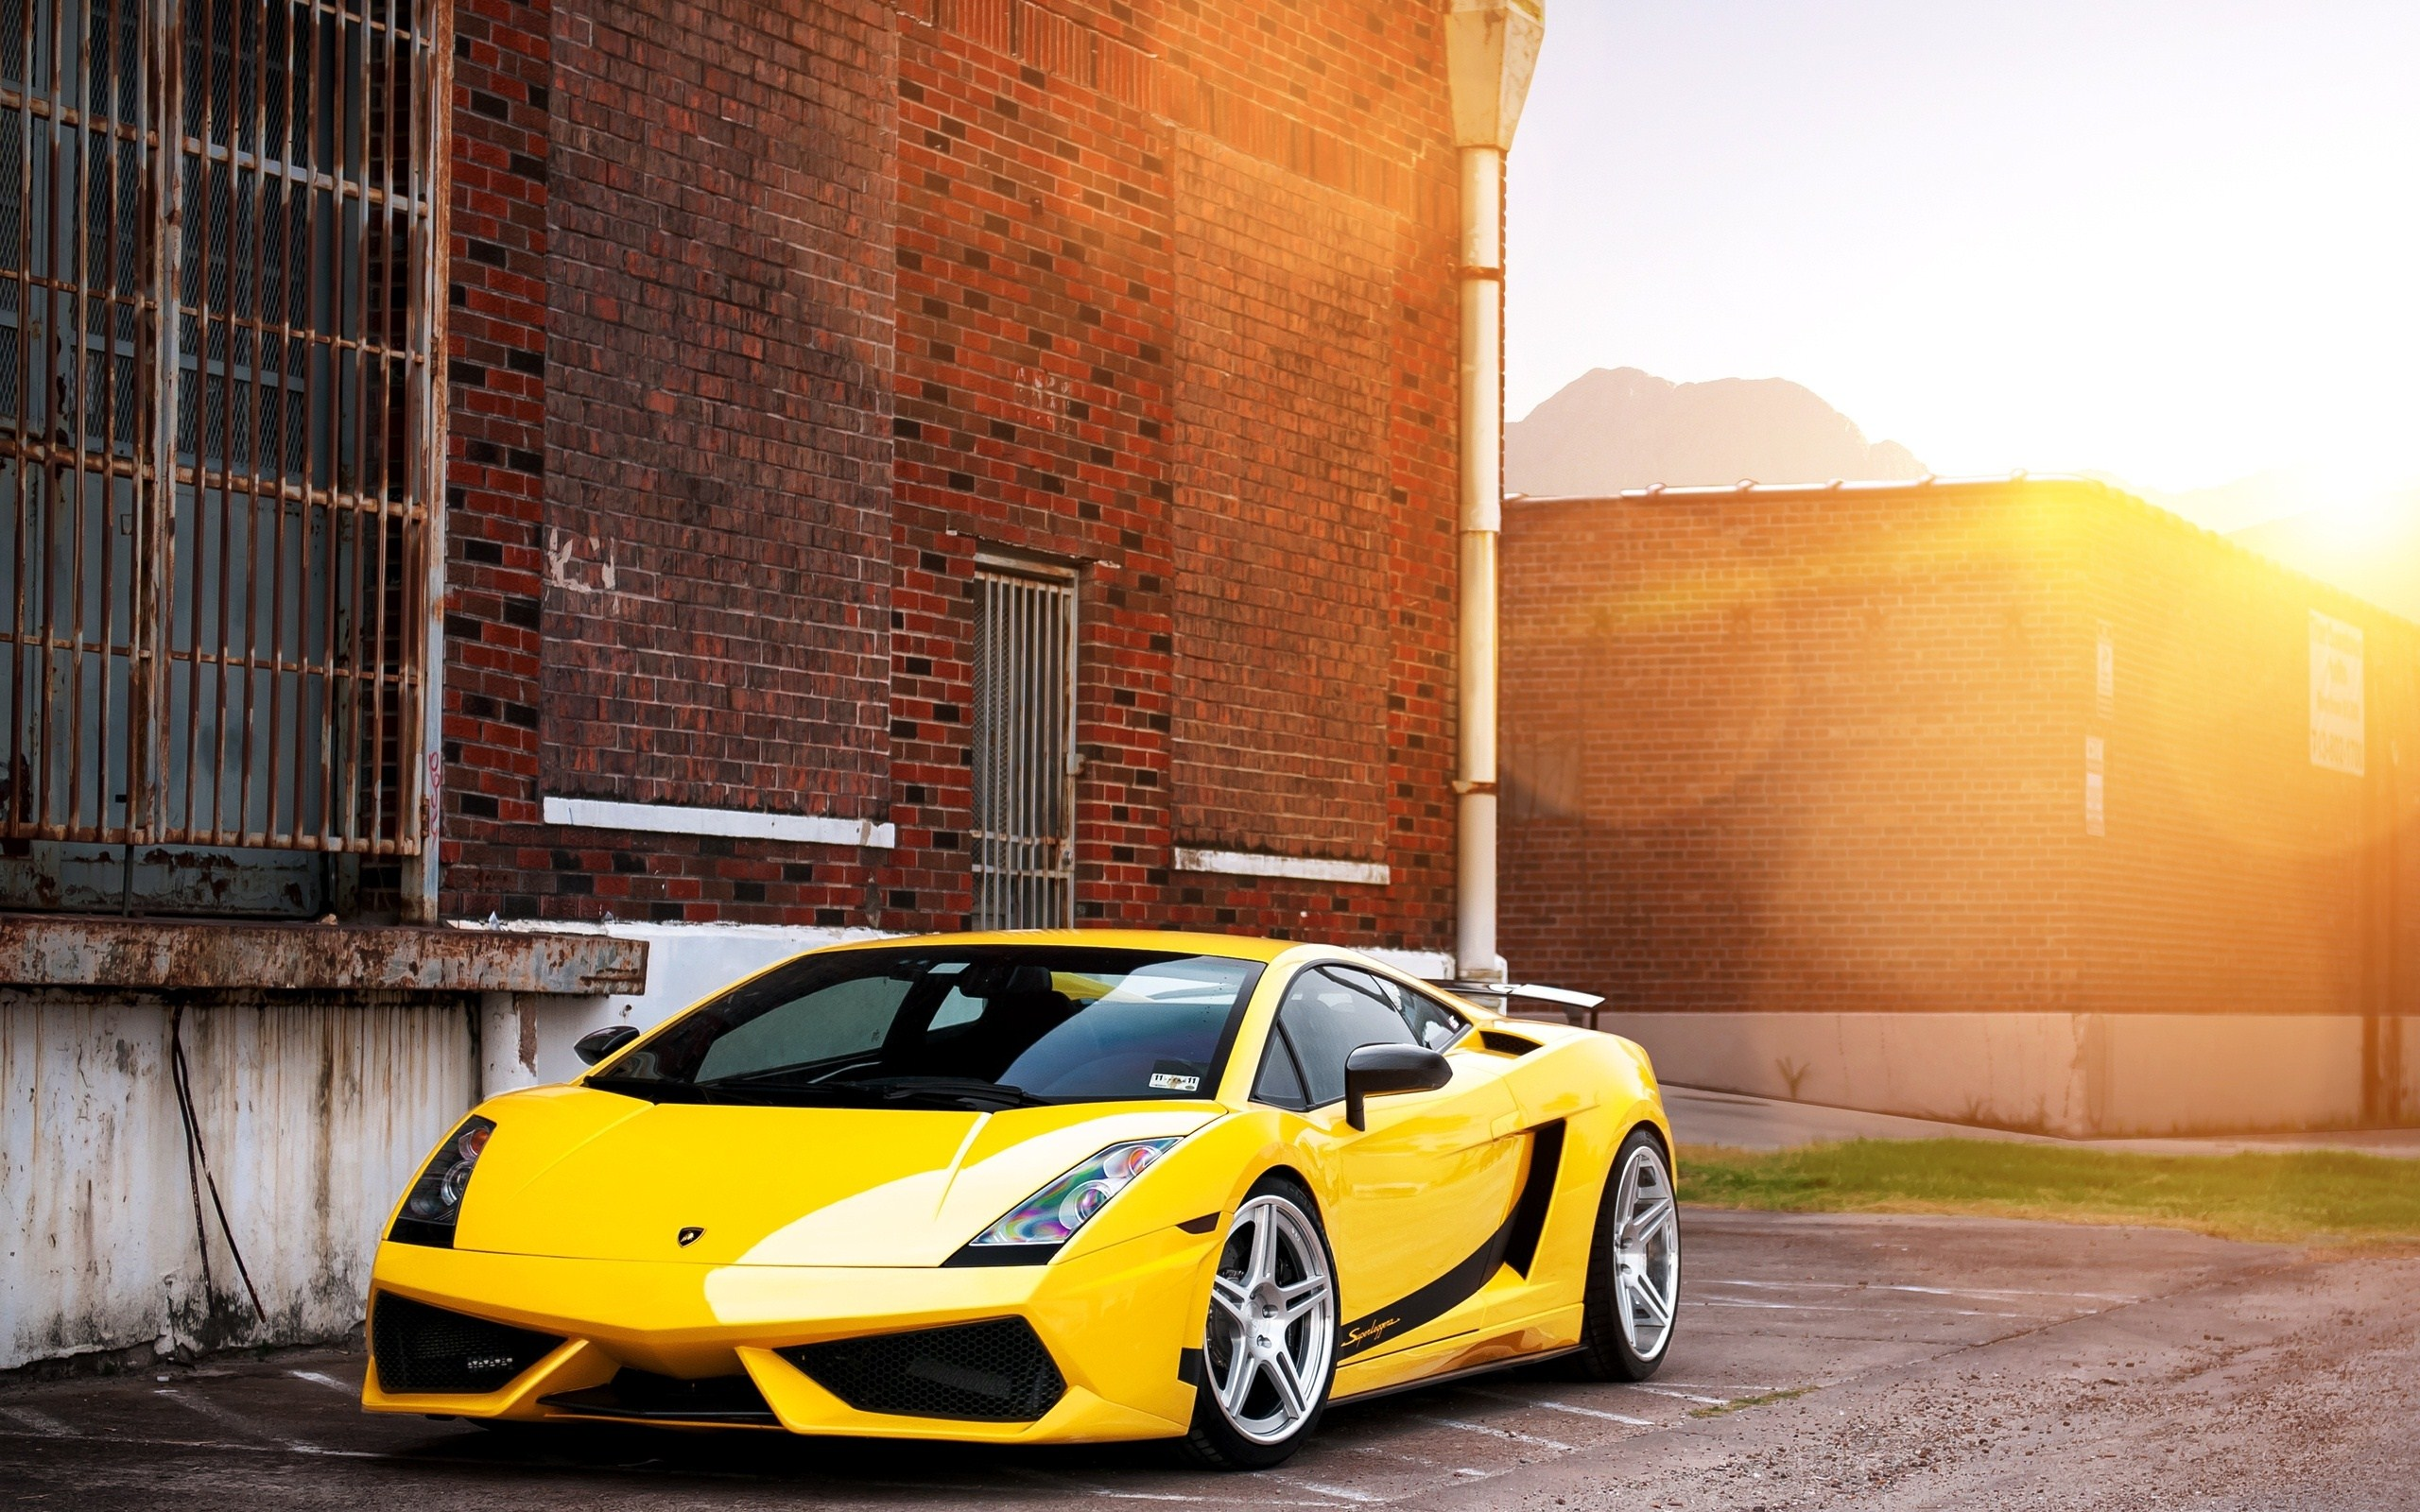 yellow lamborghini wallpaper hd 35097 2560x1600 px